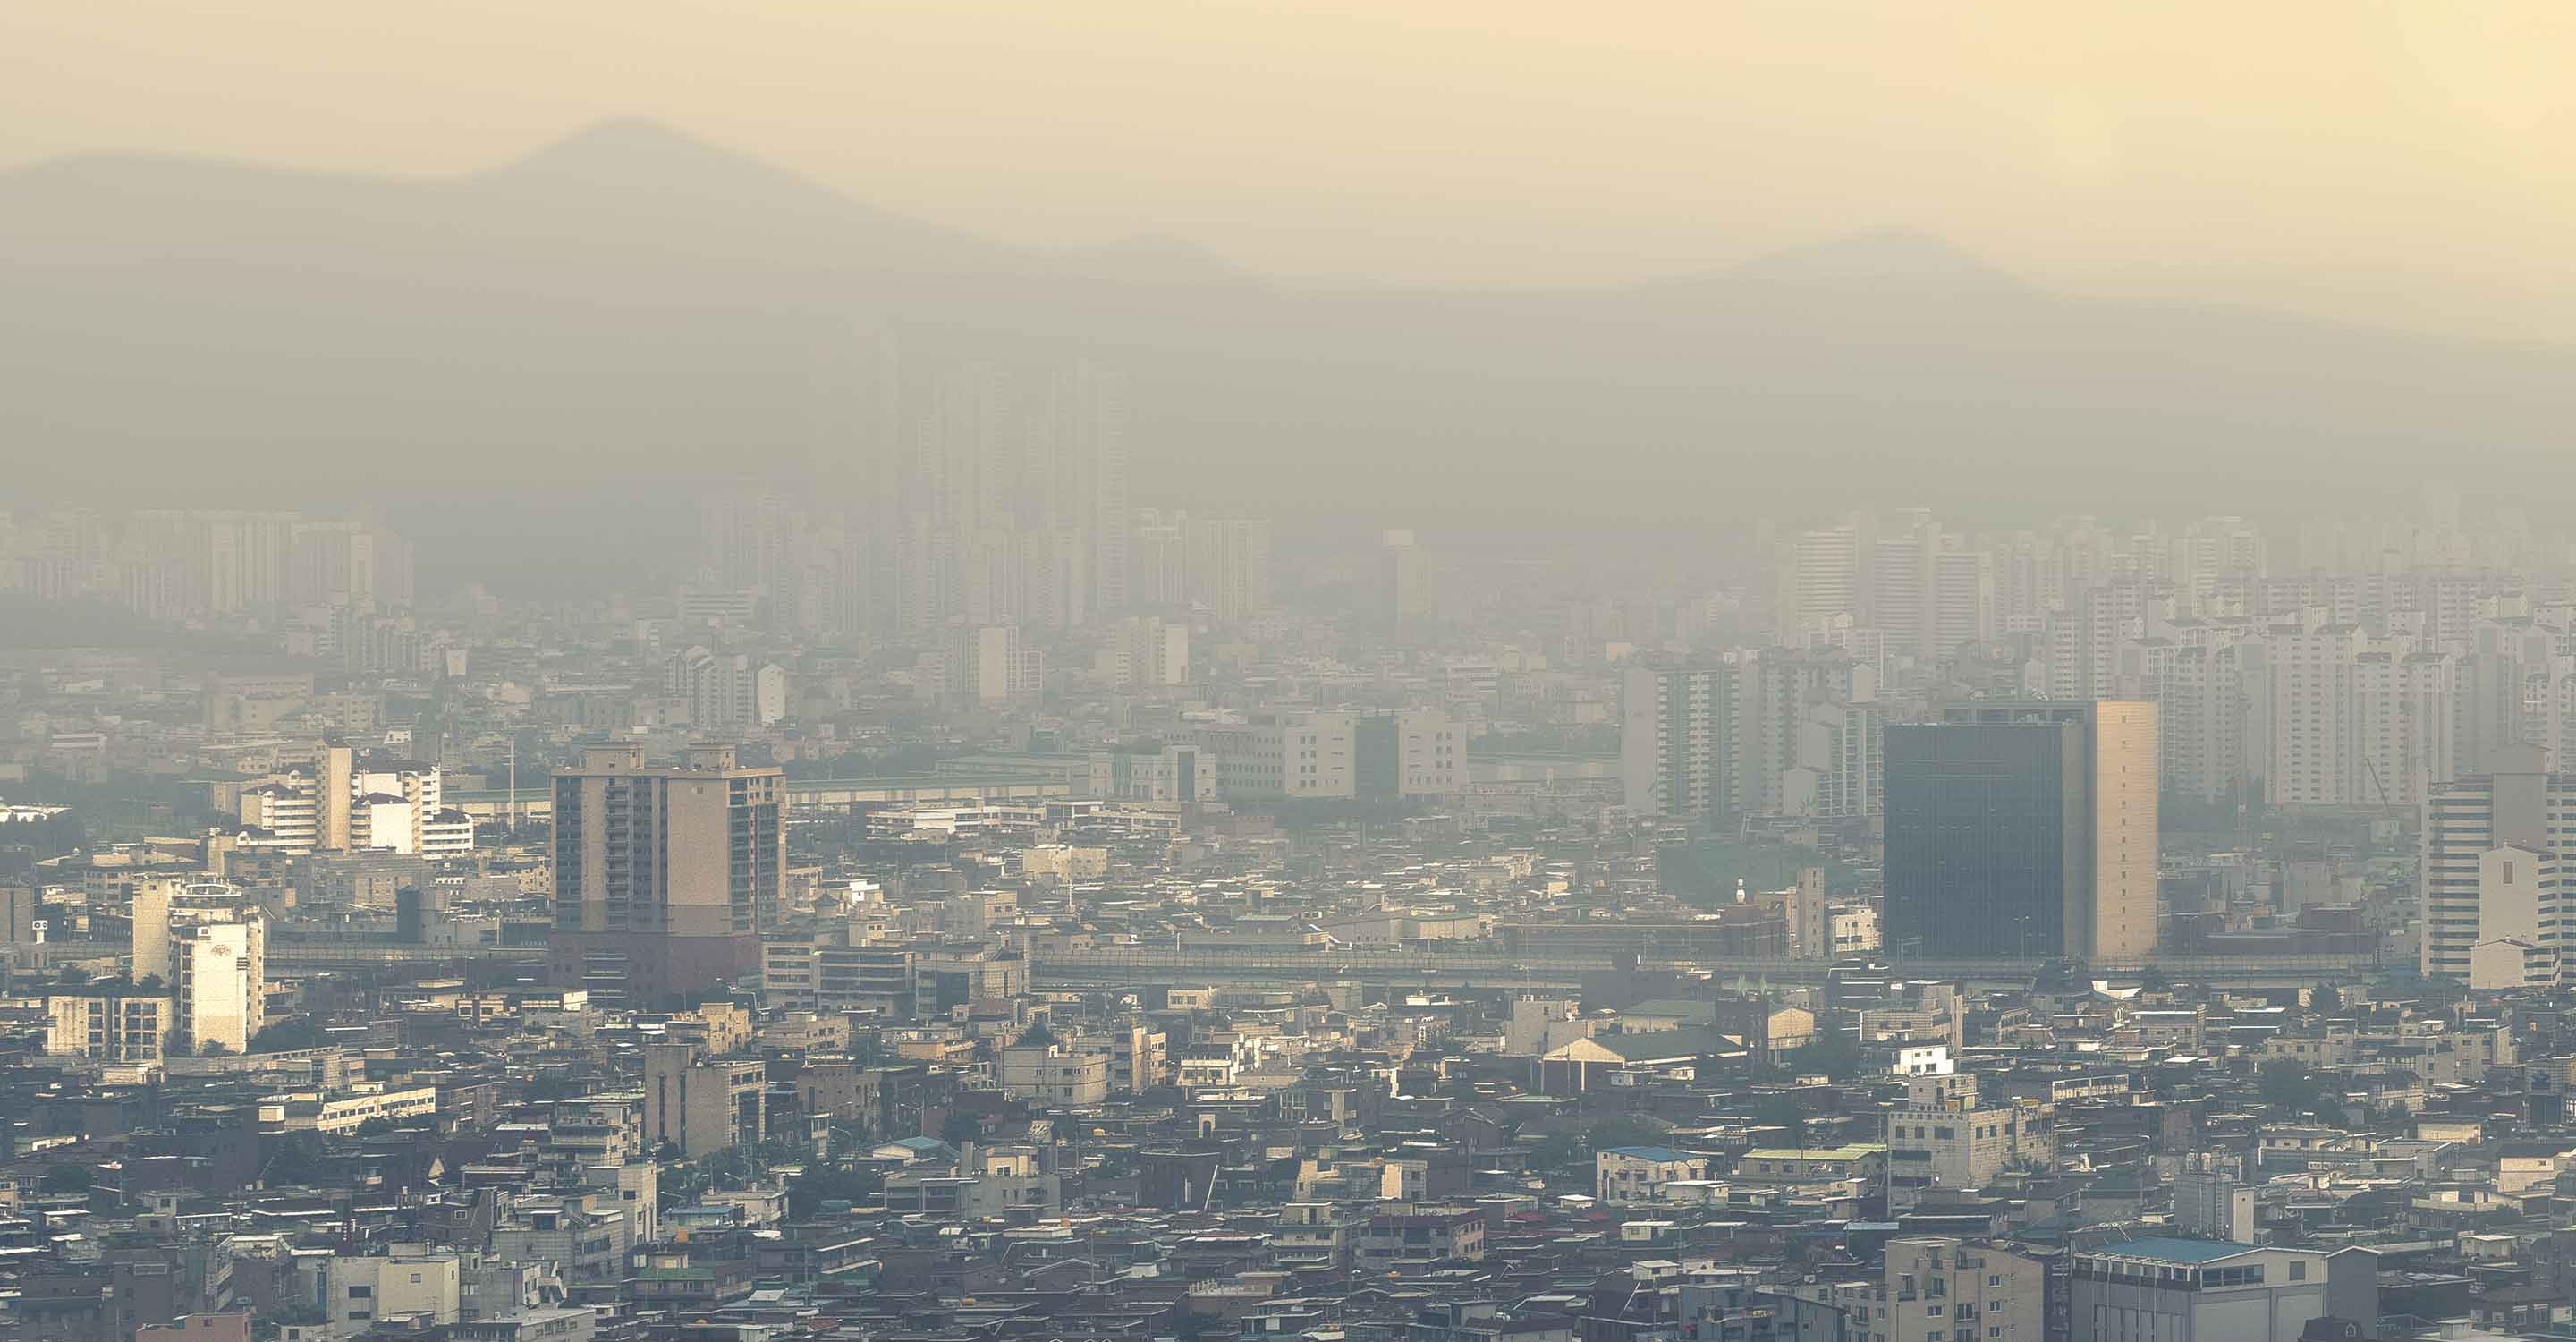 An image of a city skyline with visible smog obscuring anything beyond a couple of miles' visibility.